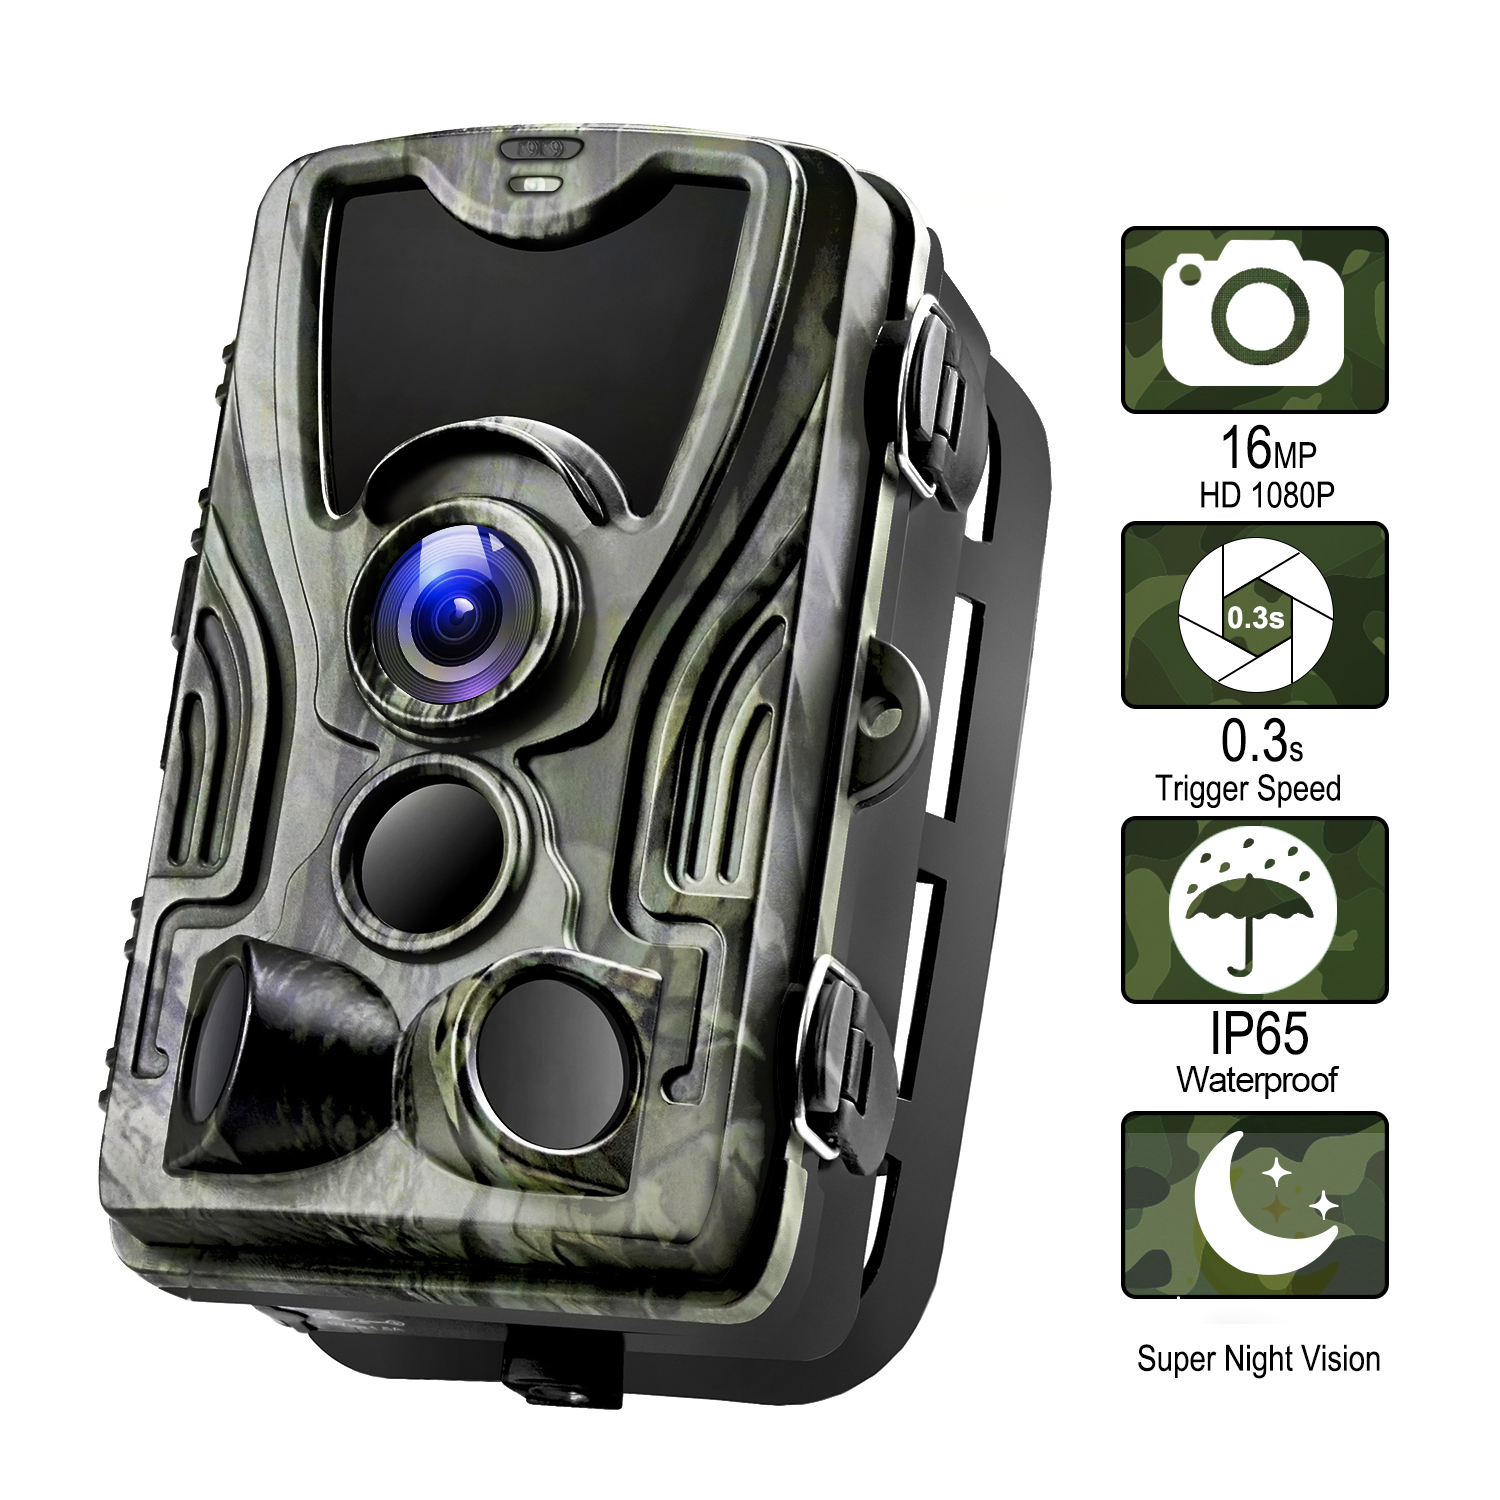 Goujxcy HC801A Hunting Camera 16MP Trail Camera Night Vision forest waterproof Wildlife Camera photo traps Camera Chasse Scouts EYOYO